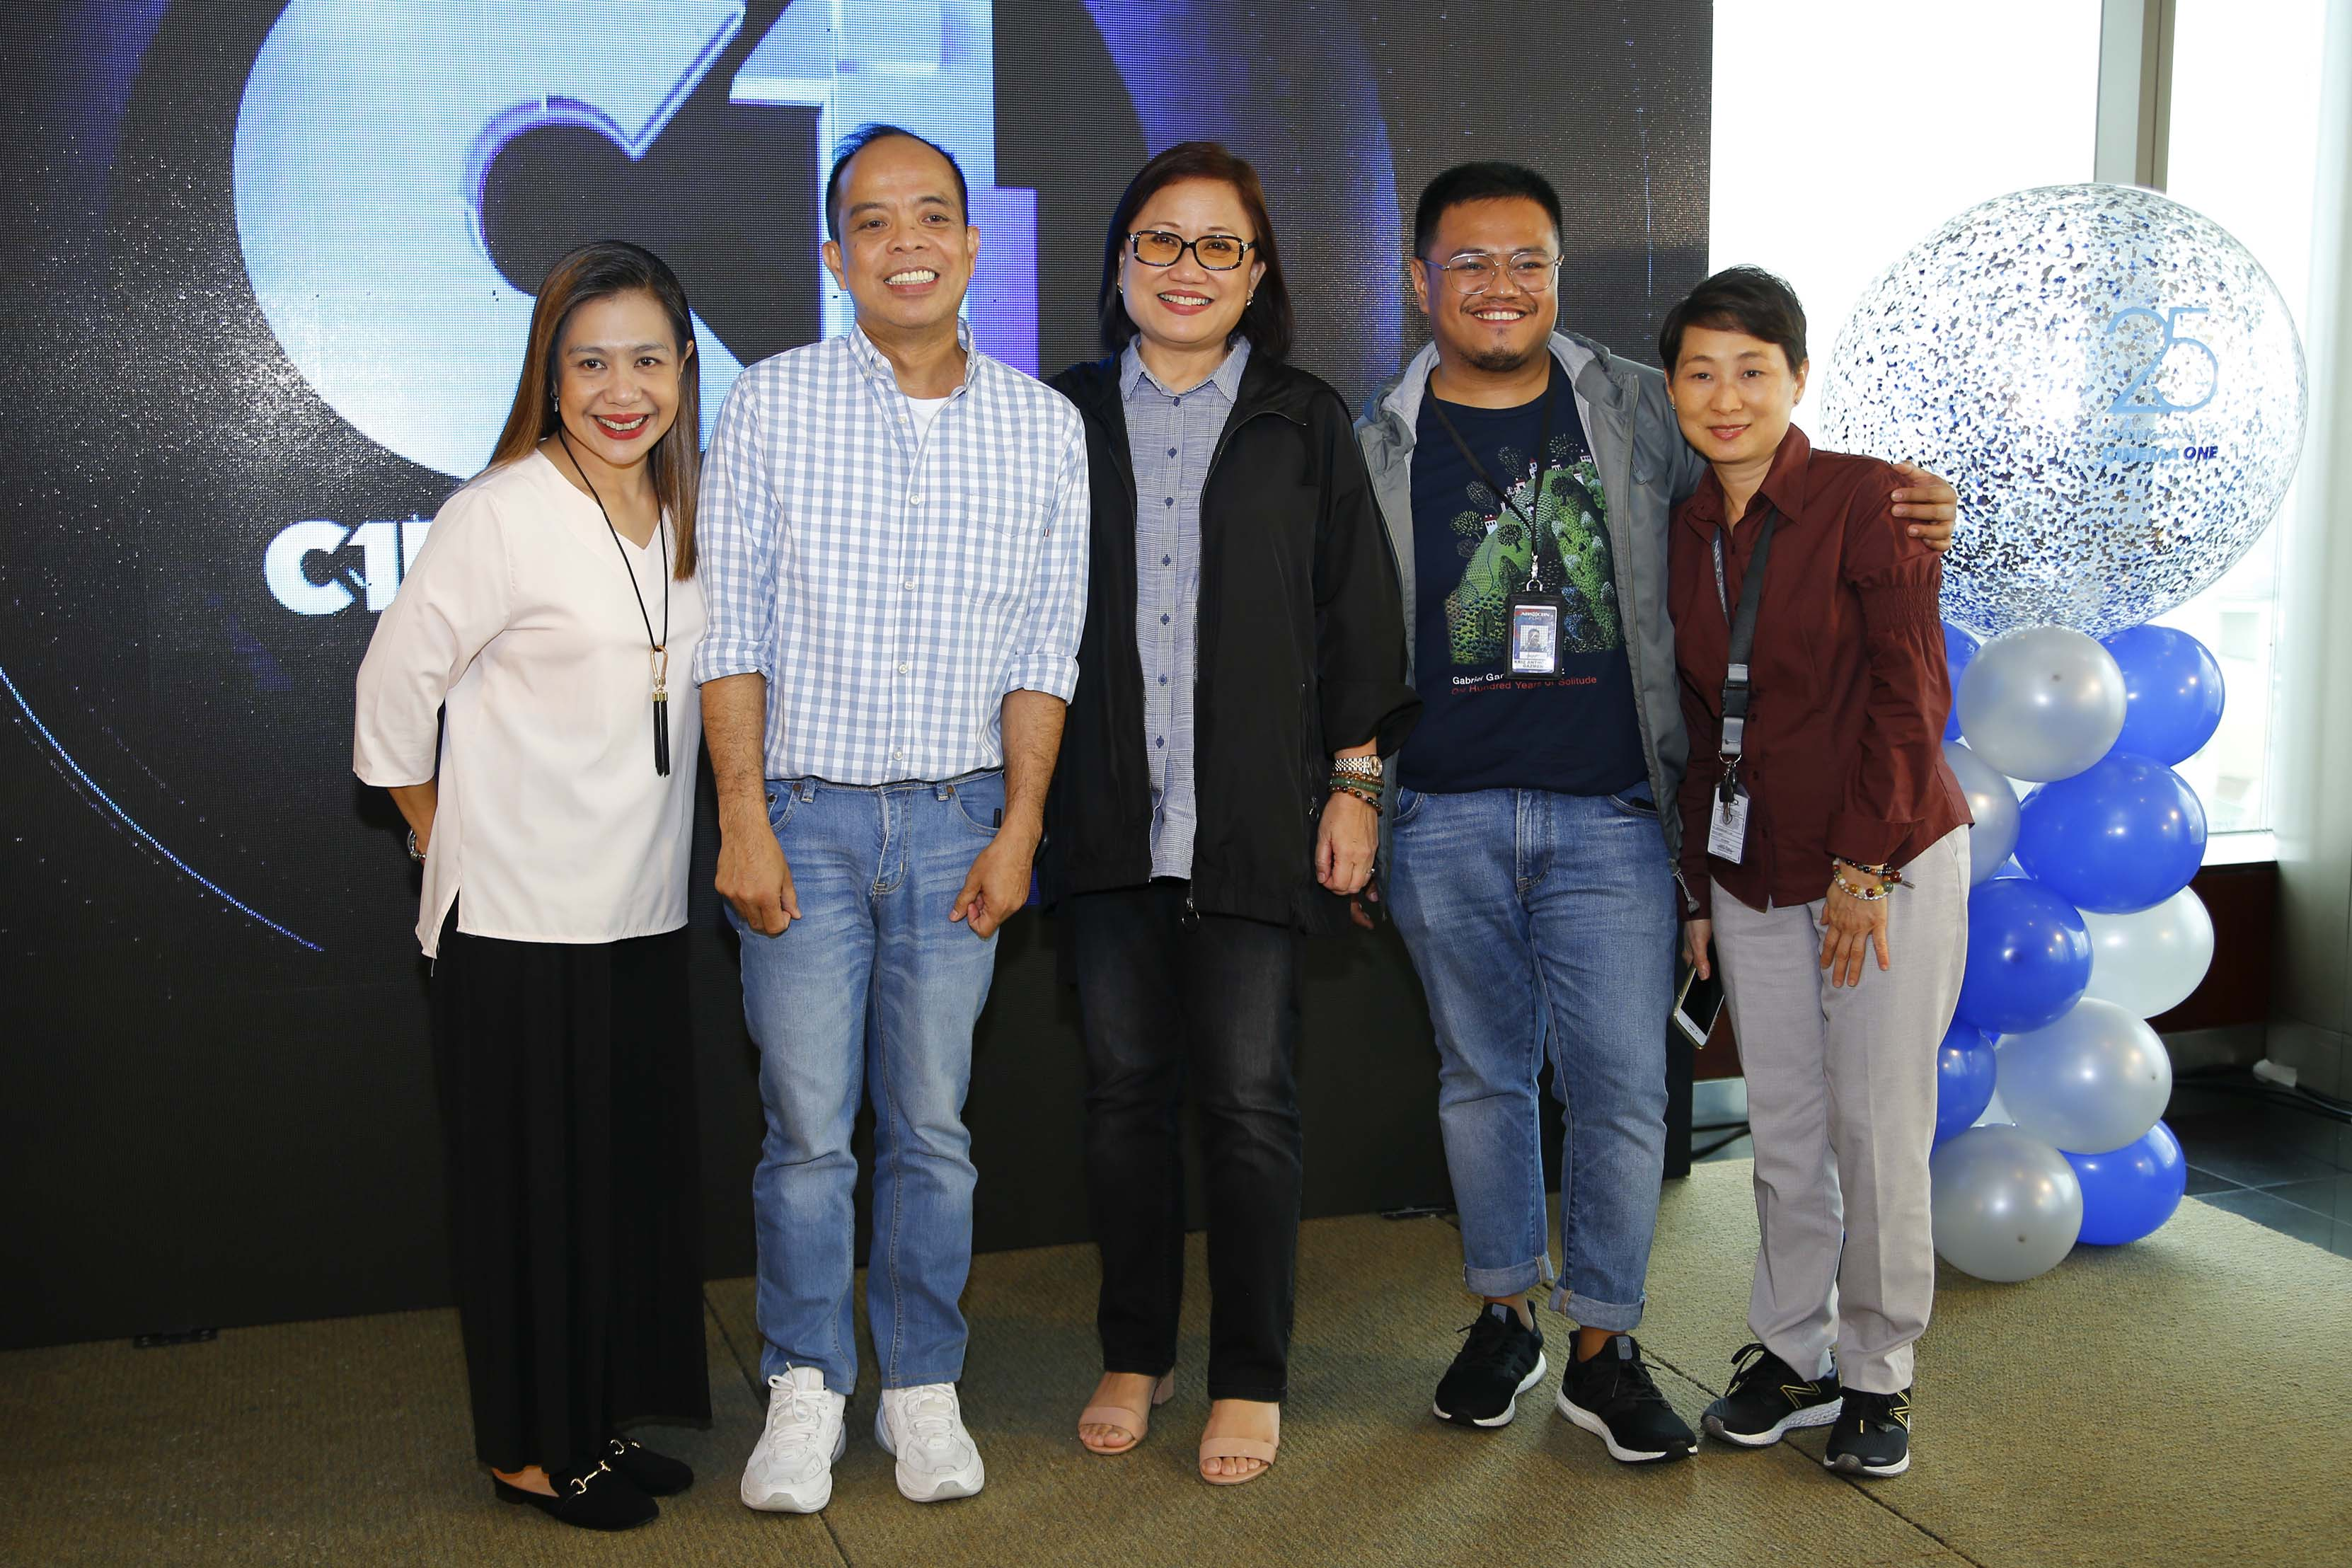 C1 channel head Ronald Arguelles with ABS-CBN Films management committee members Marizel Samson, Olivia Lamasan, Kriz Gazmen and Jacqueline Liu